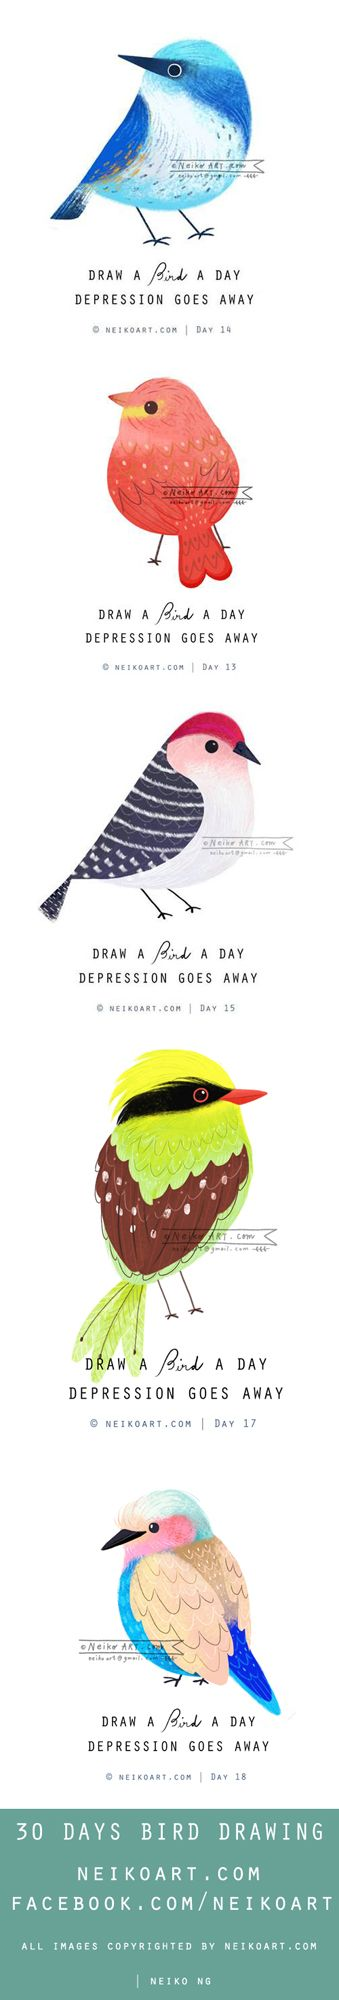 Draw a bird a day illustrated by Neiko Ng (via neikoart.com).